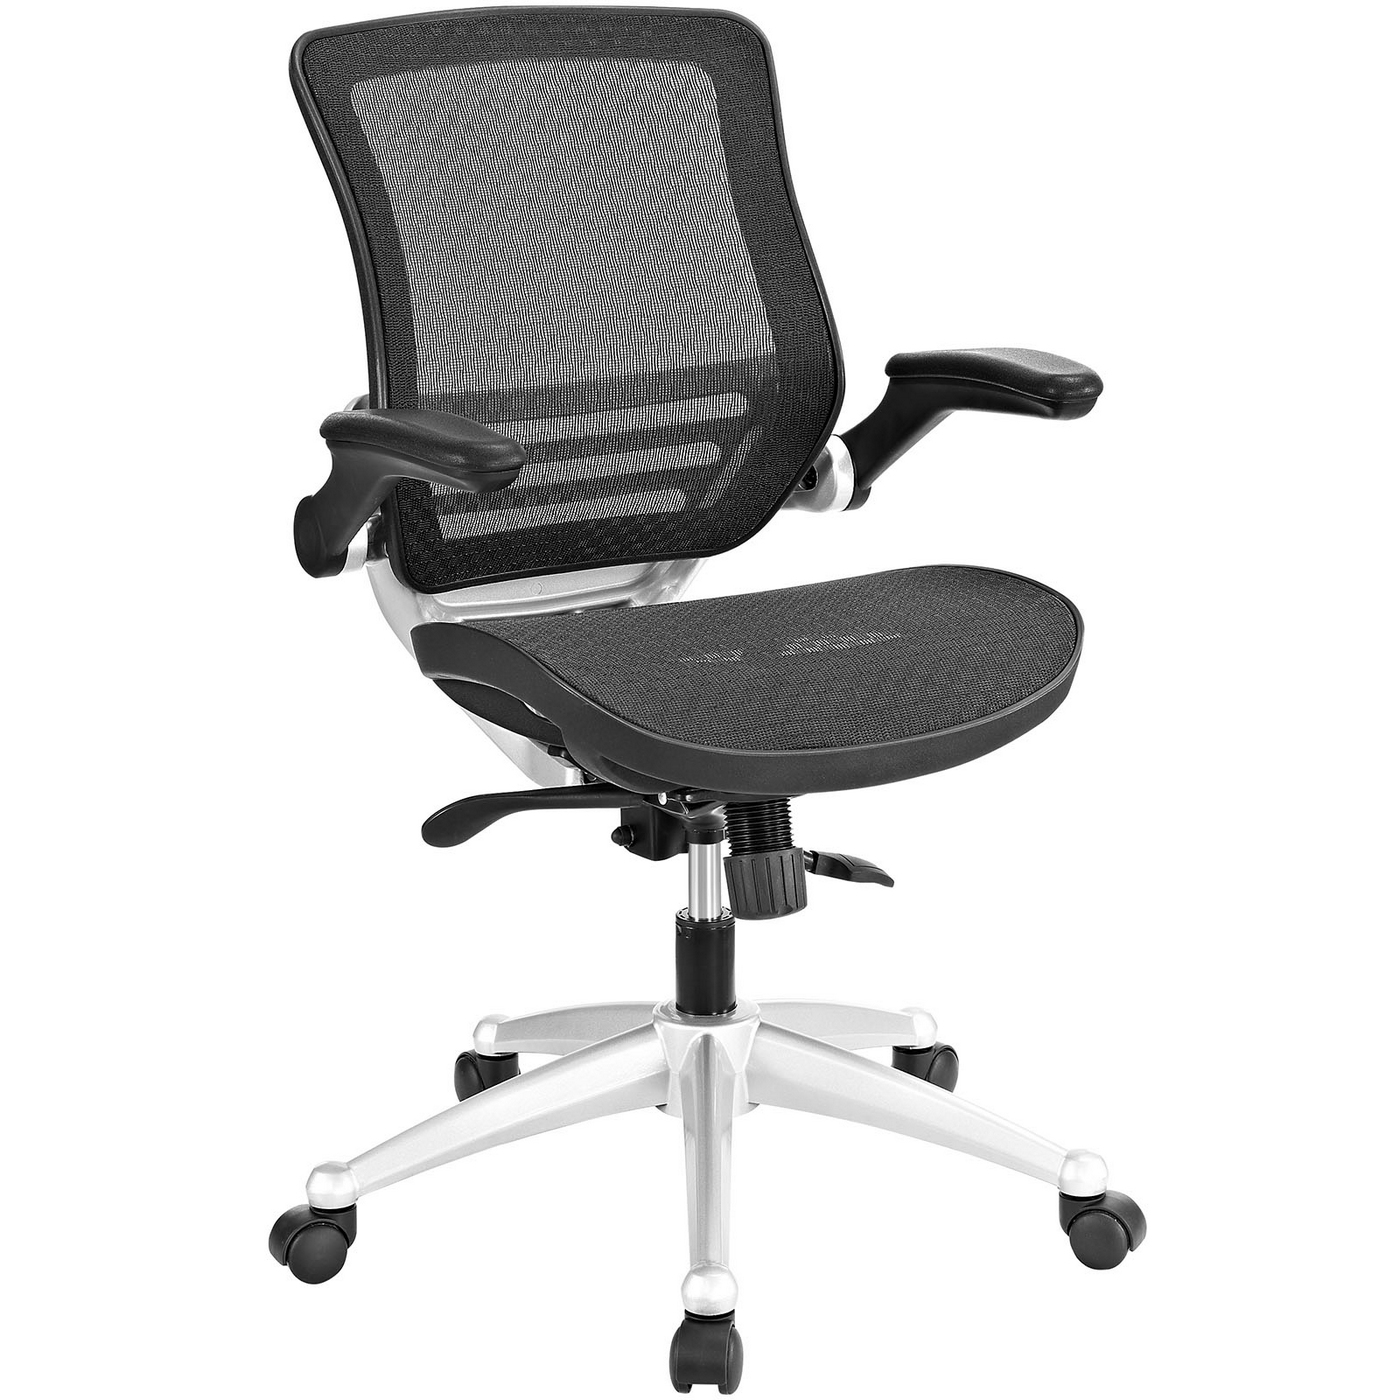 Ergonomic Mesh Office Chair Edge Modern Ergonomic Mesh Office Chair W/ Padded Vinyl